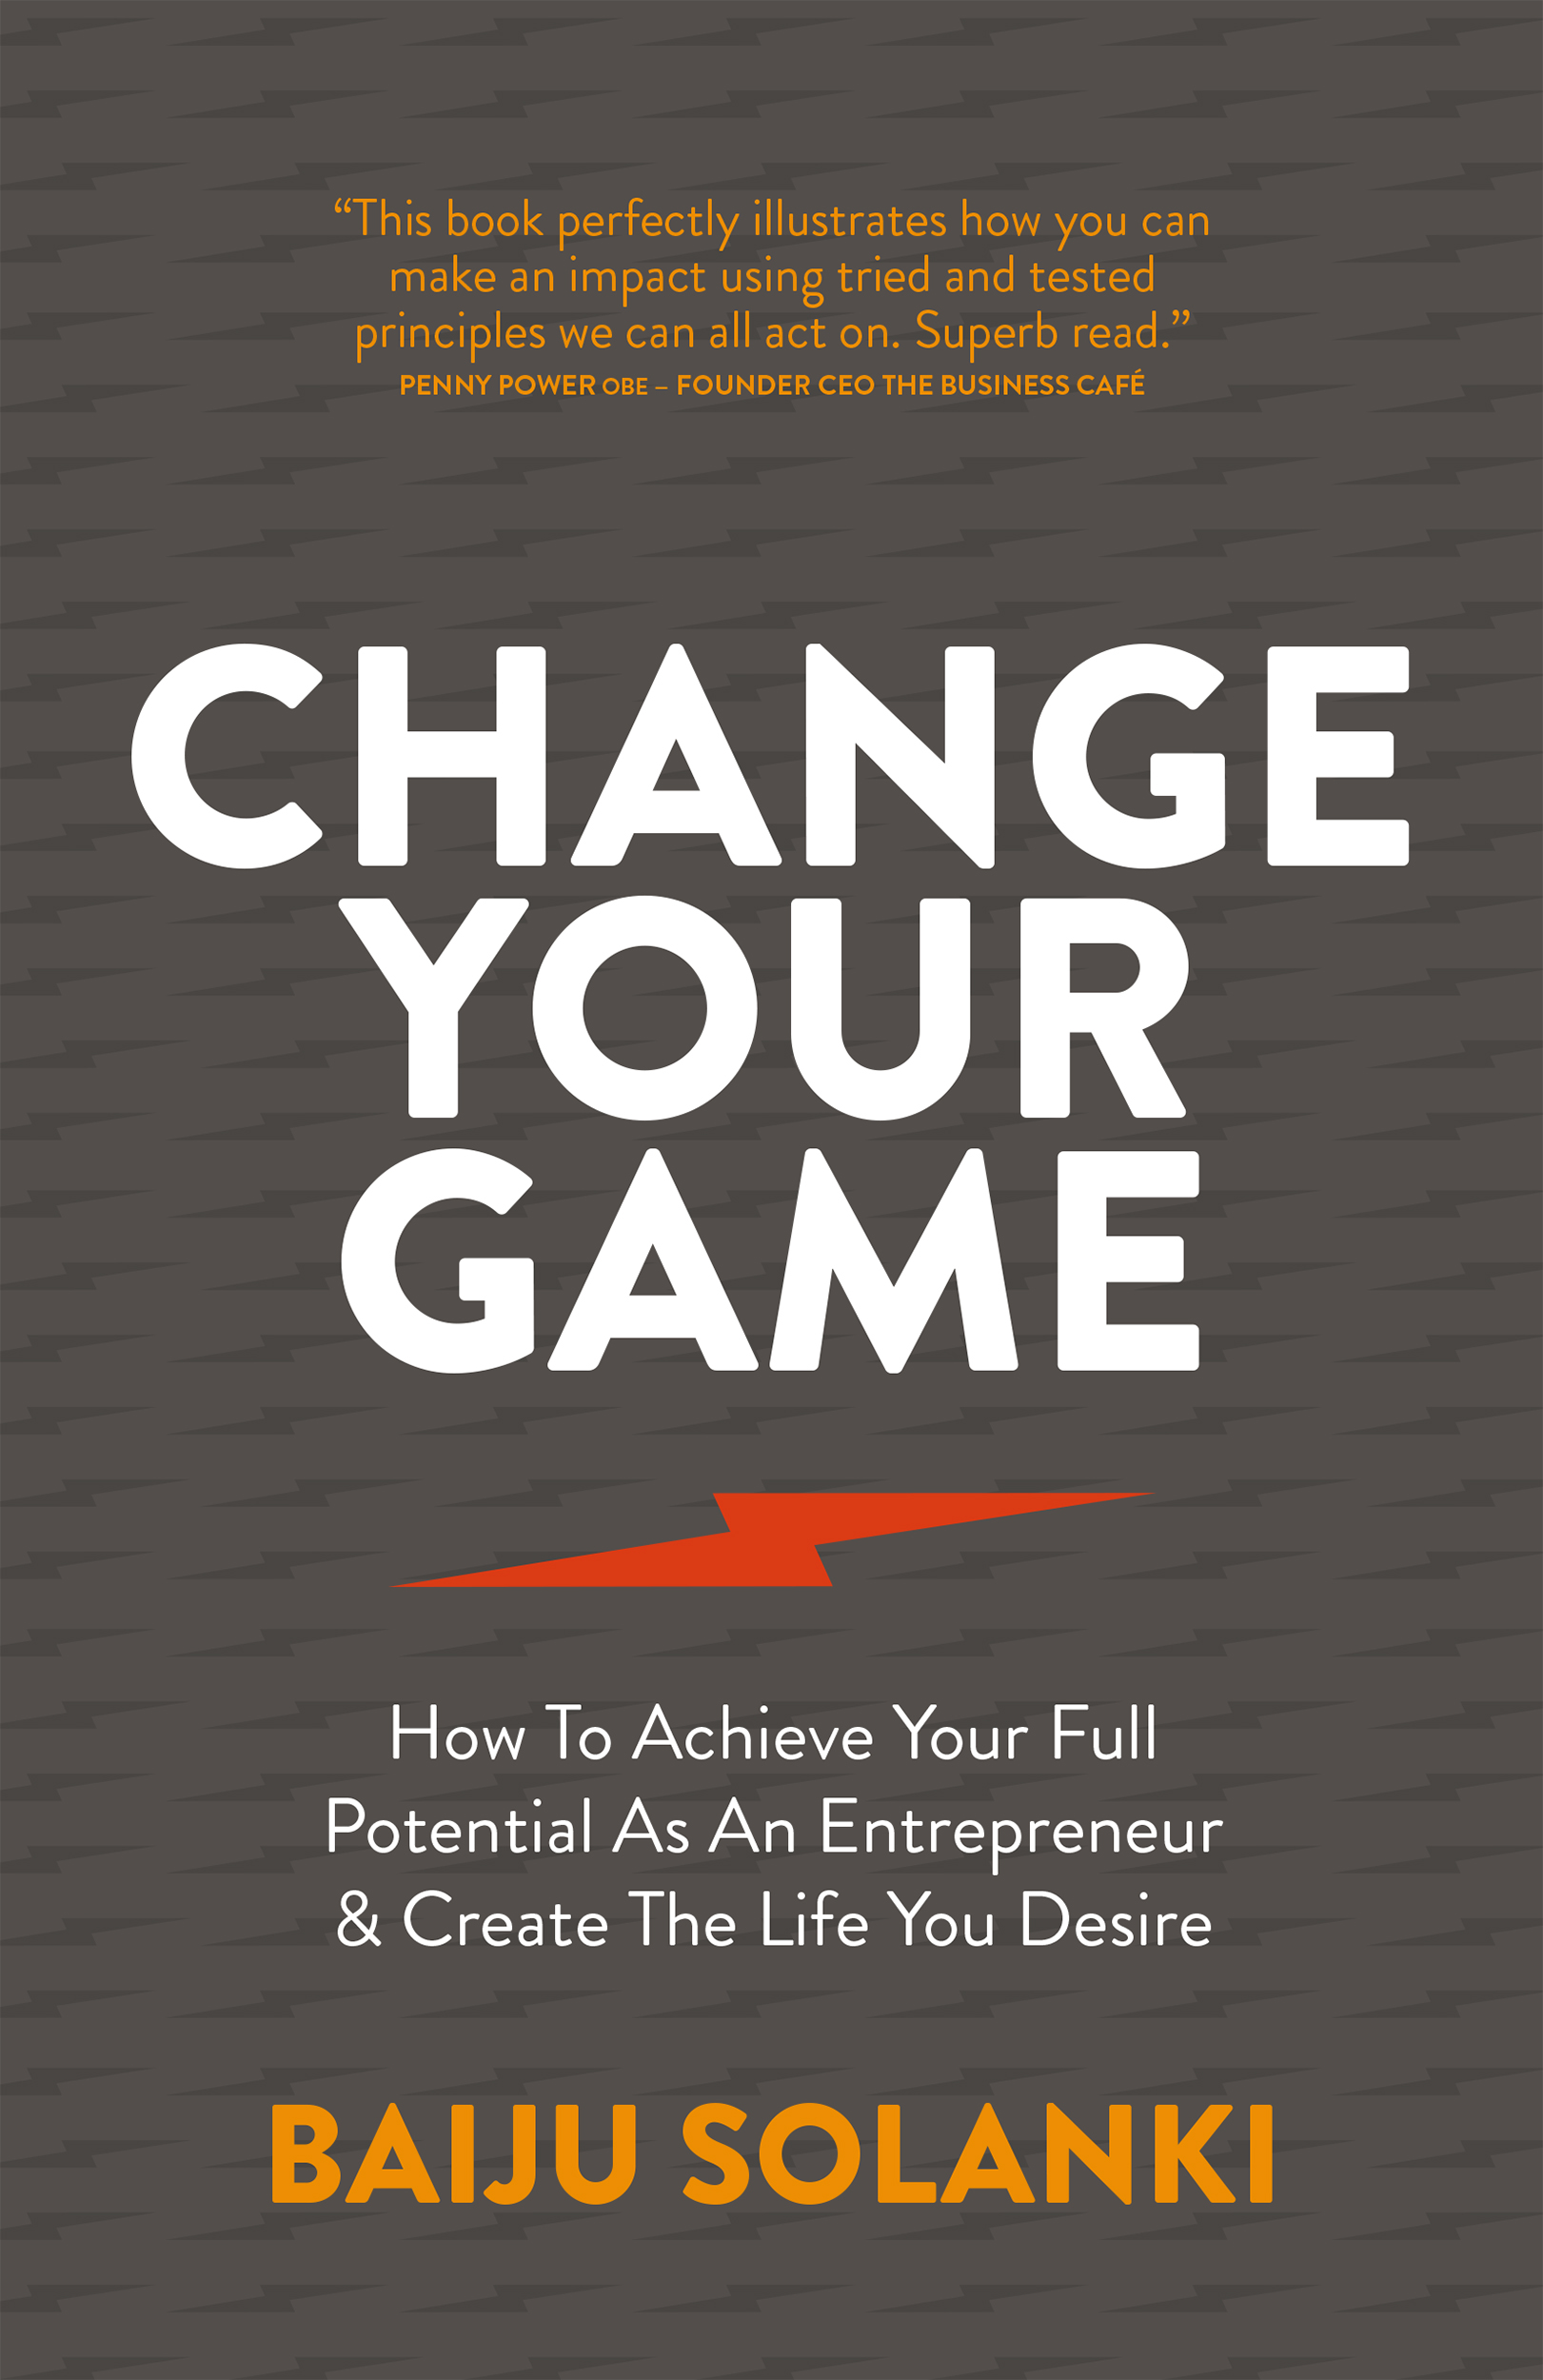 """Change Your Game"" by Baiju Solanki"